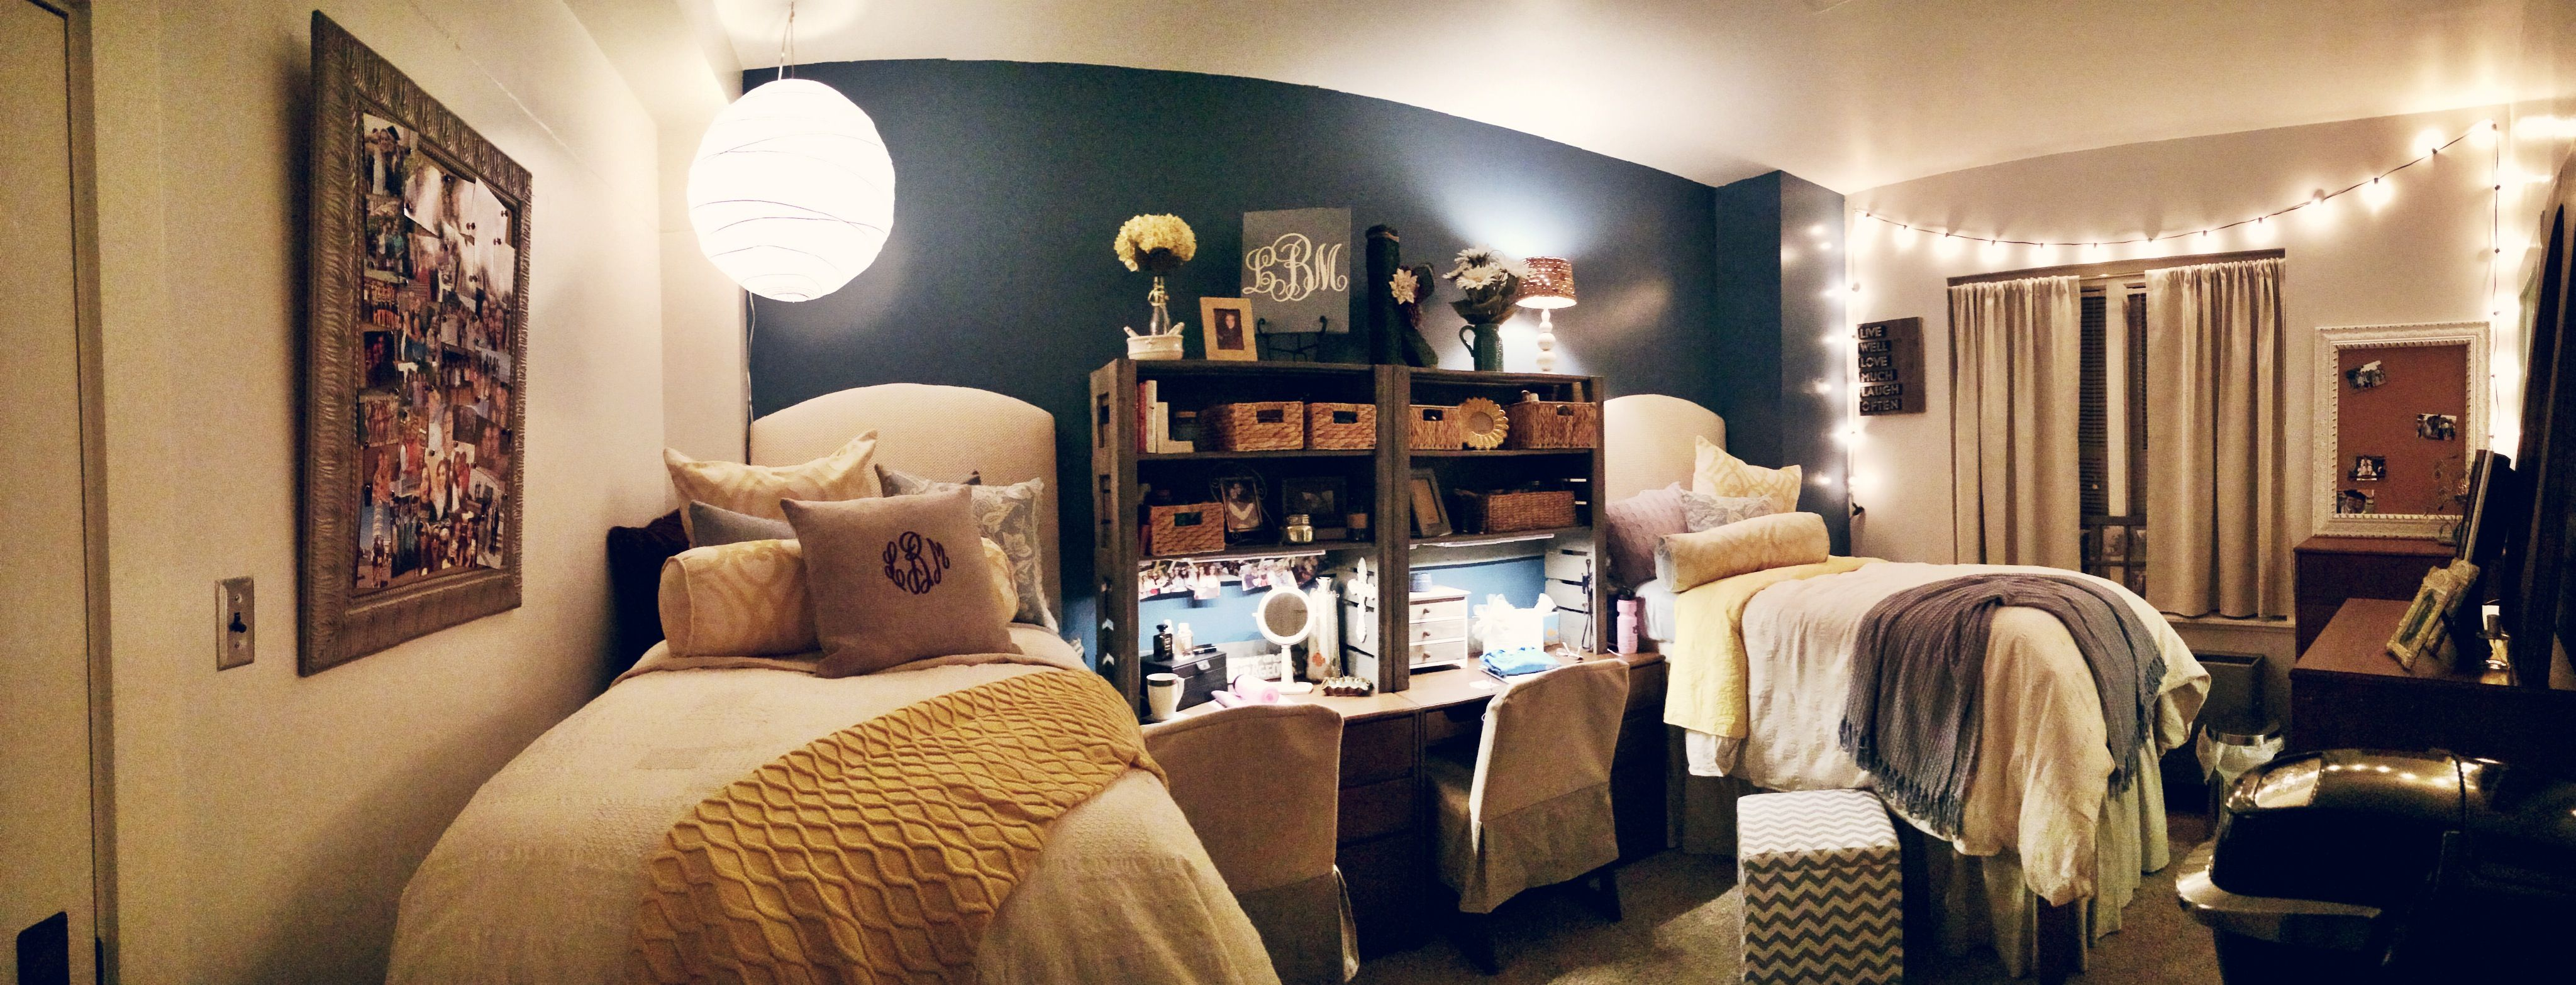 Dorm Sweet DormAuburn University  Dorm  Pinterest  ~ 021824_Auburn Dorm Room Ideas